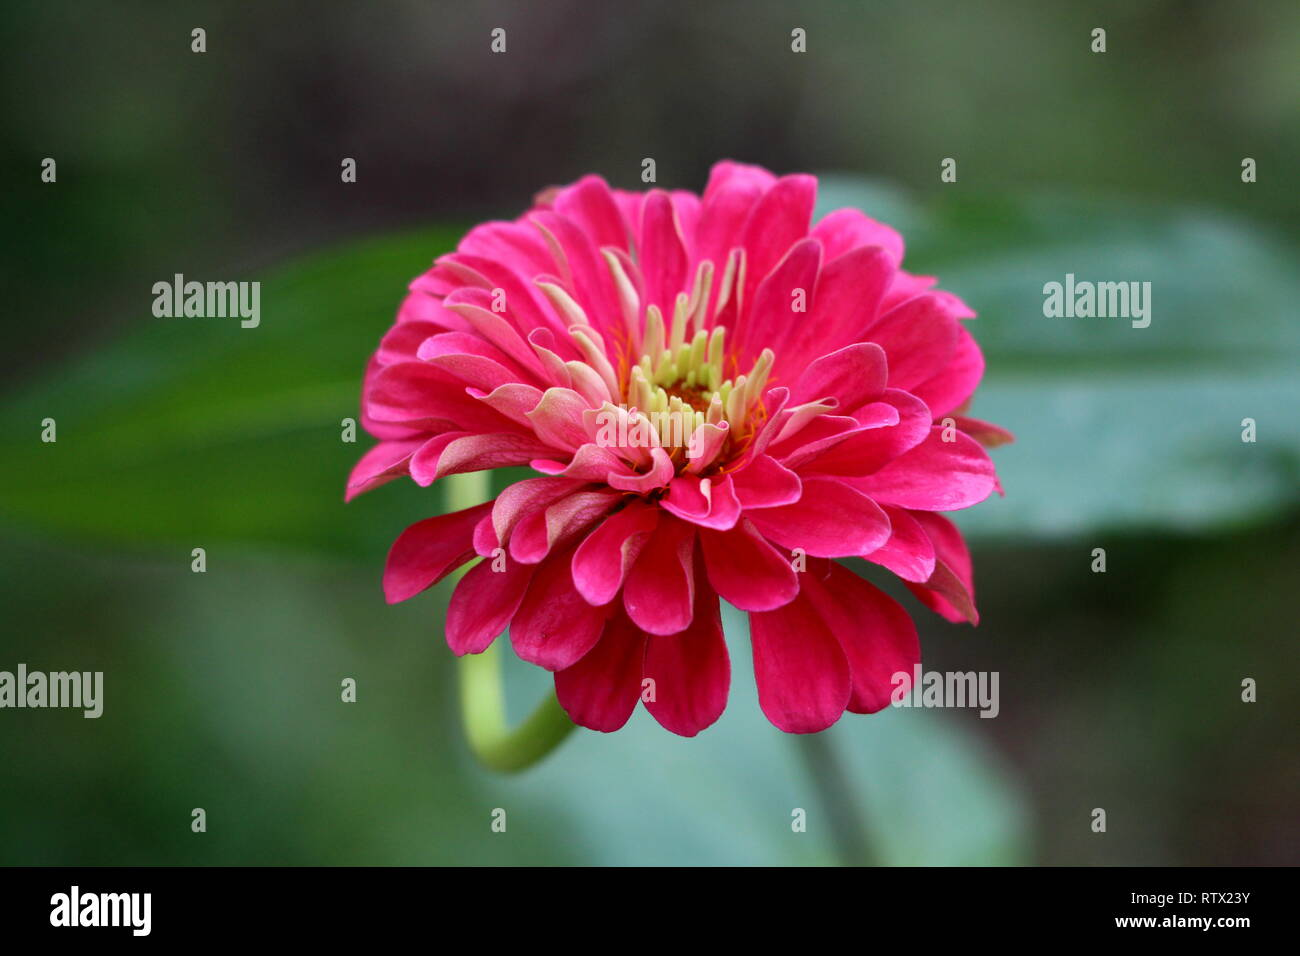 Amazing multi layered Zinnia flower with fully open blooming layered pink petals with white center surrounded with green leaves in local garden - Stock Image